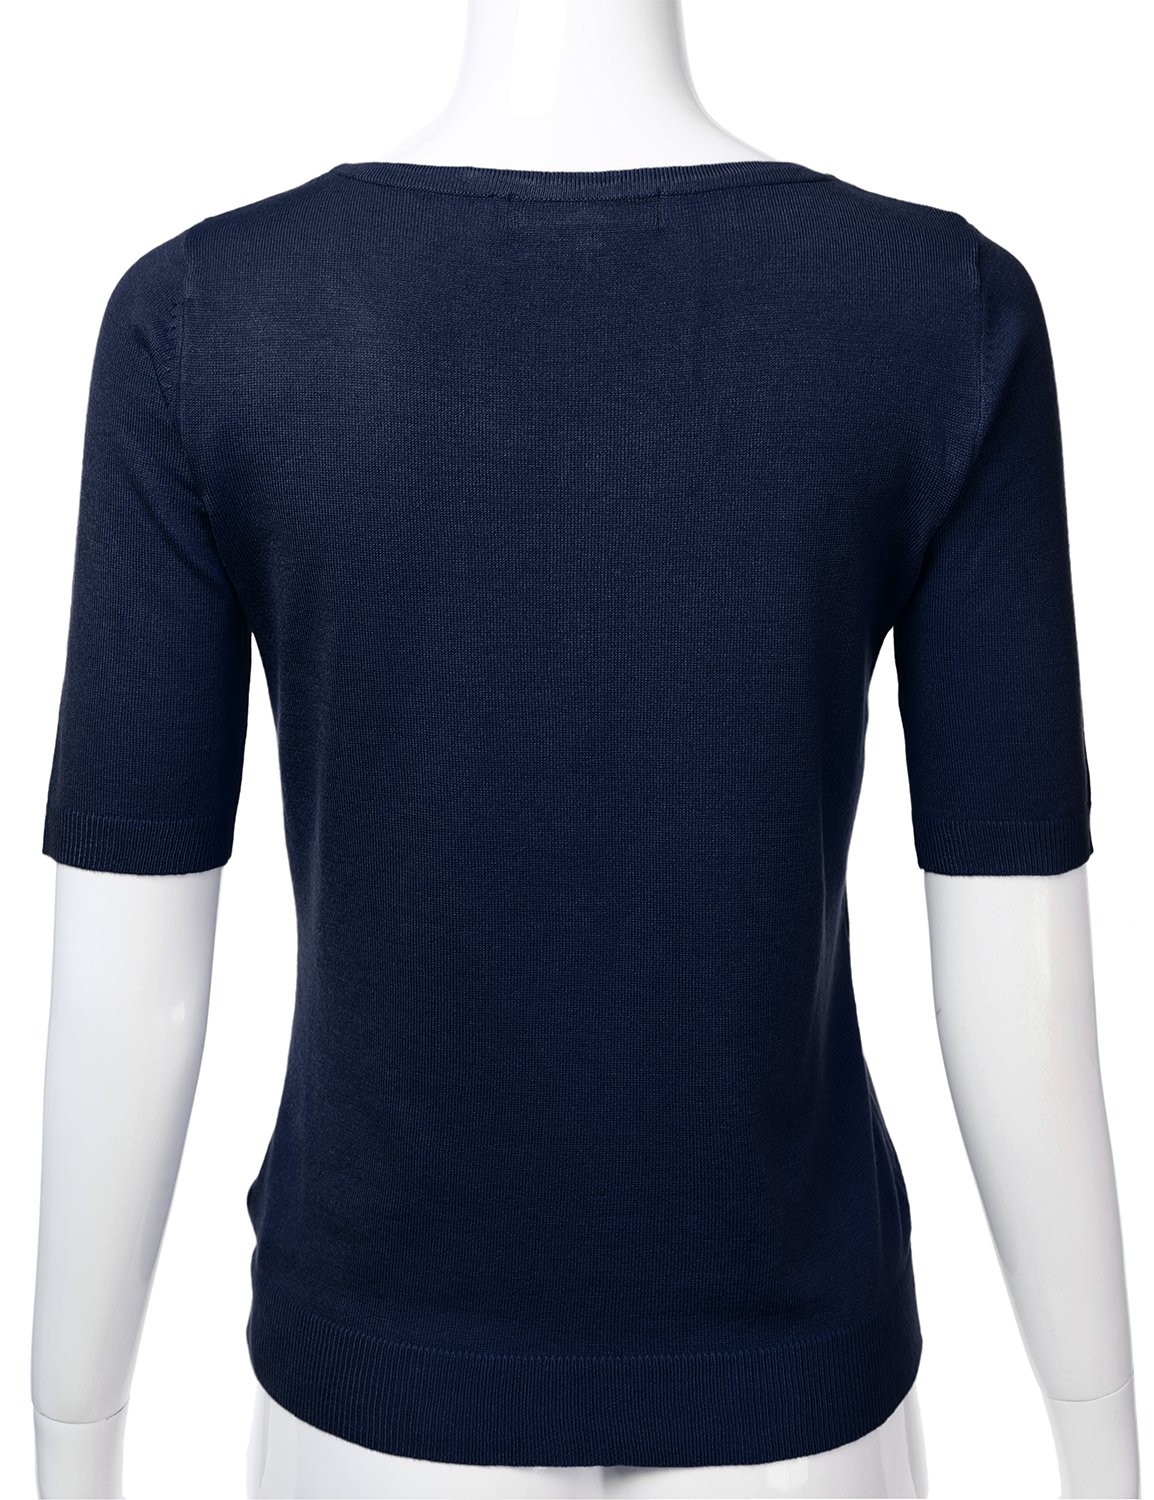 FLORIA Womens Button Down Fitted Short Sleeve Fine Knit Top Cardigan Sweater Navy L by FLORIA (Image #3)